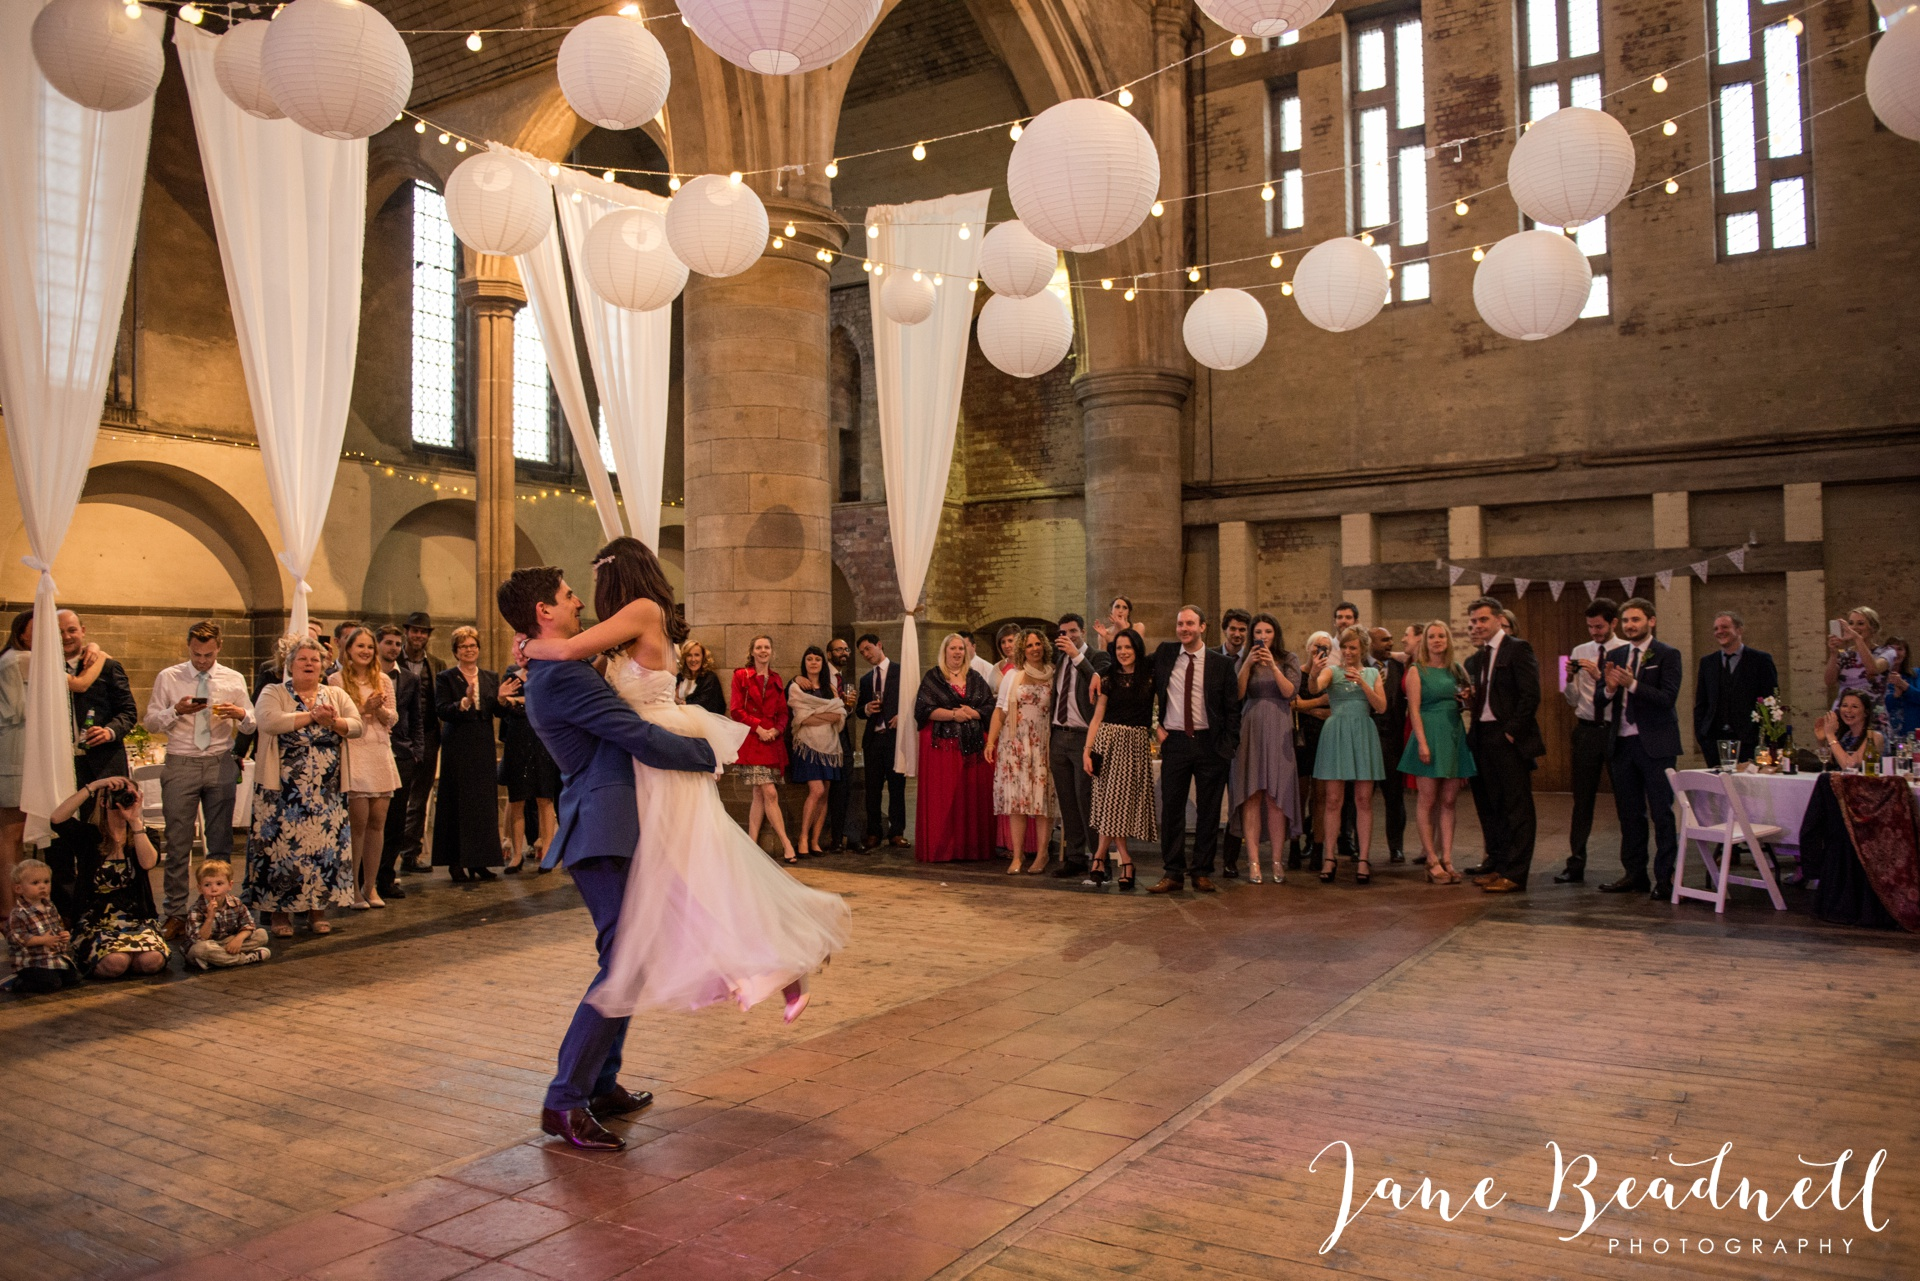 Left Bank Centre Leeds wedding photography by Jane Beadnell photography Yorkshire_0131